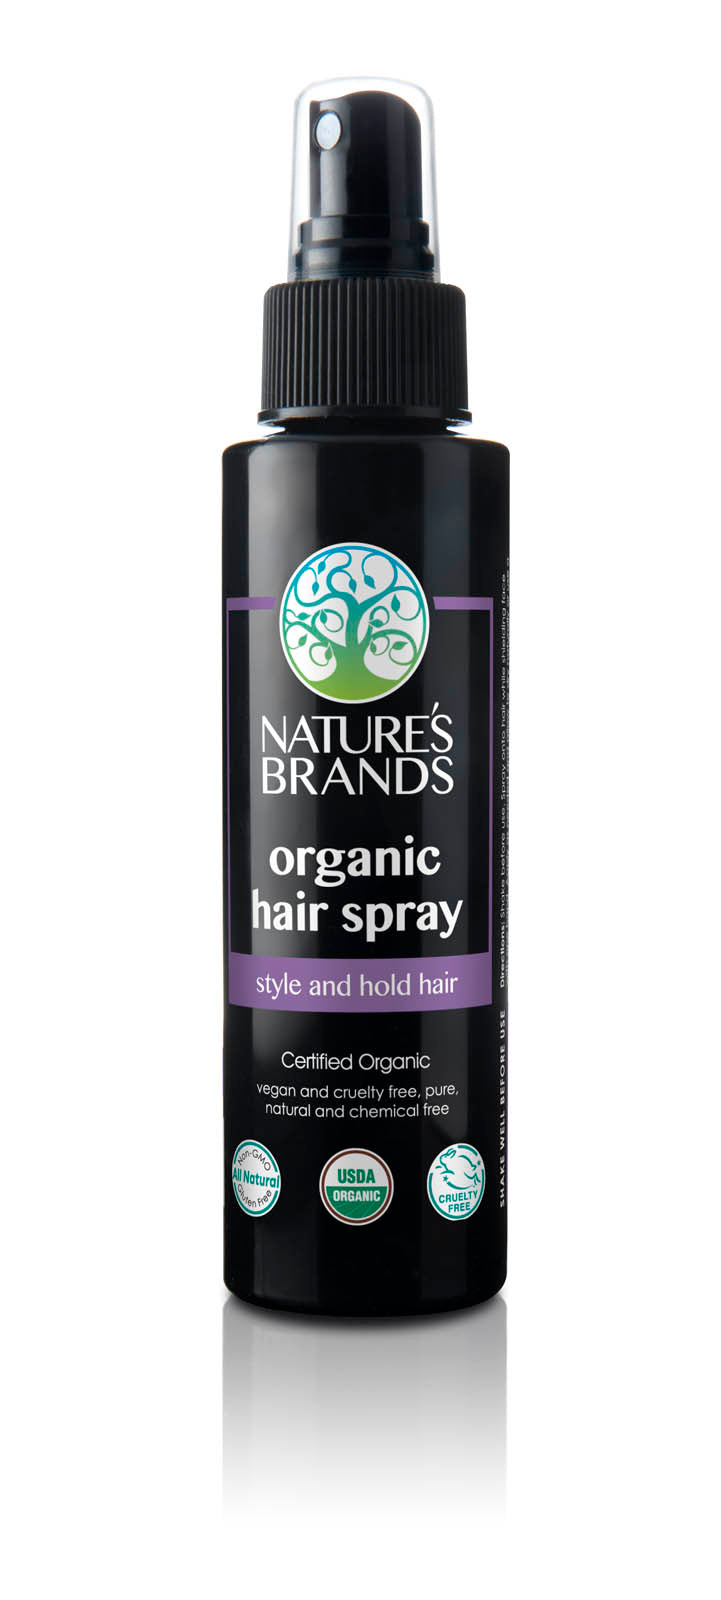 Herbal Choice Mari Organic Hair Spray - Herbal Choice Mari Organic Hair Spray - Herbal Choice Mari Organic Hair Spray